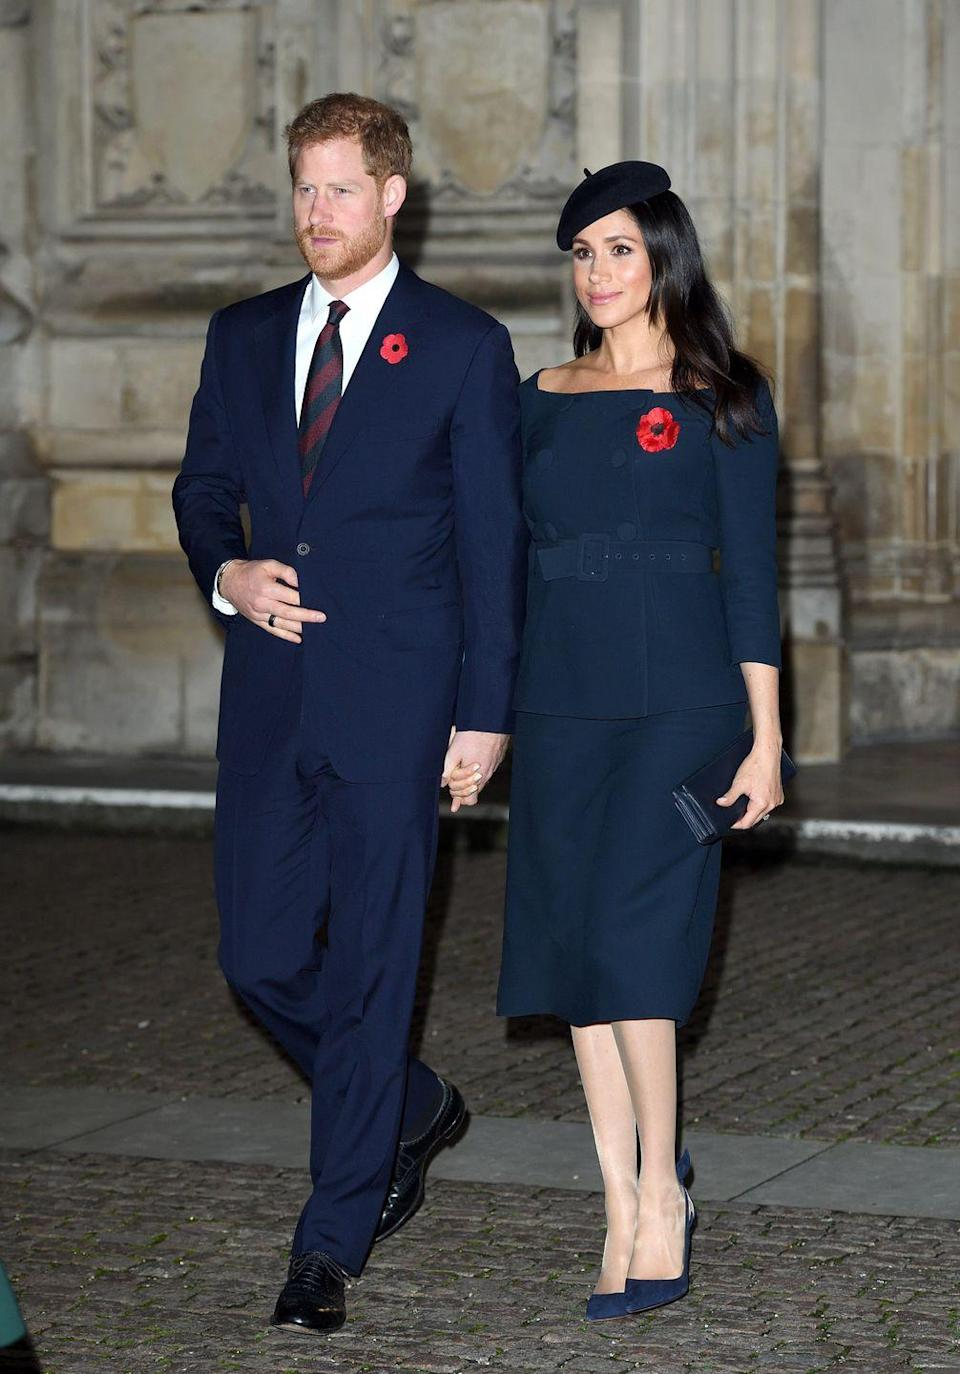 "<p>The Duke and Duchess joined other members of the royal family at Westminster Abbey for <a href=""https://www.townandcountrymag.com/style/fashion-trends/a24851110/meghan-markle-navy-blue-wwi-remembrance-service-photos/"" rel=""nofollow noopener"" target=""_blank"" data-ylk=""slk:a final Armistice Day service."" class=""link rapid-noclick-resp"">a final Armistice Day service.</a> The Duchess wore a navy skirt and shoulder-skimming peplum top for the event, again with a large poppy pin.</p>"